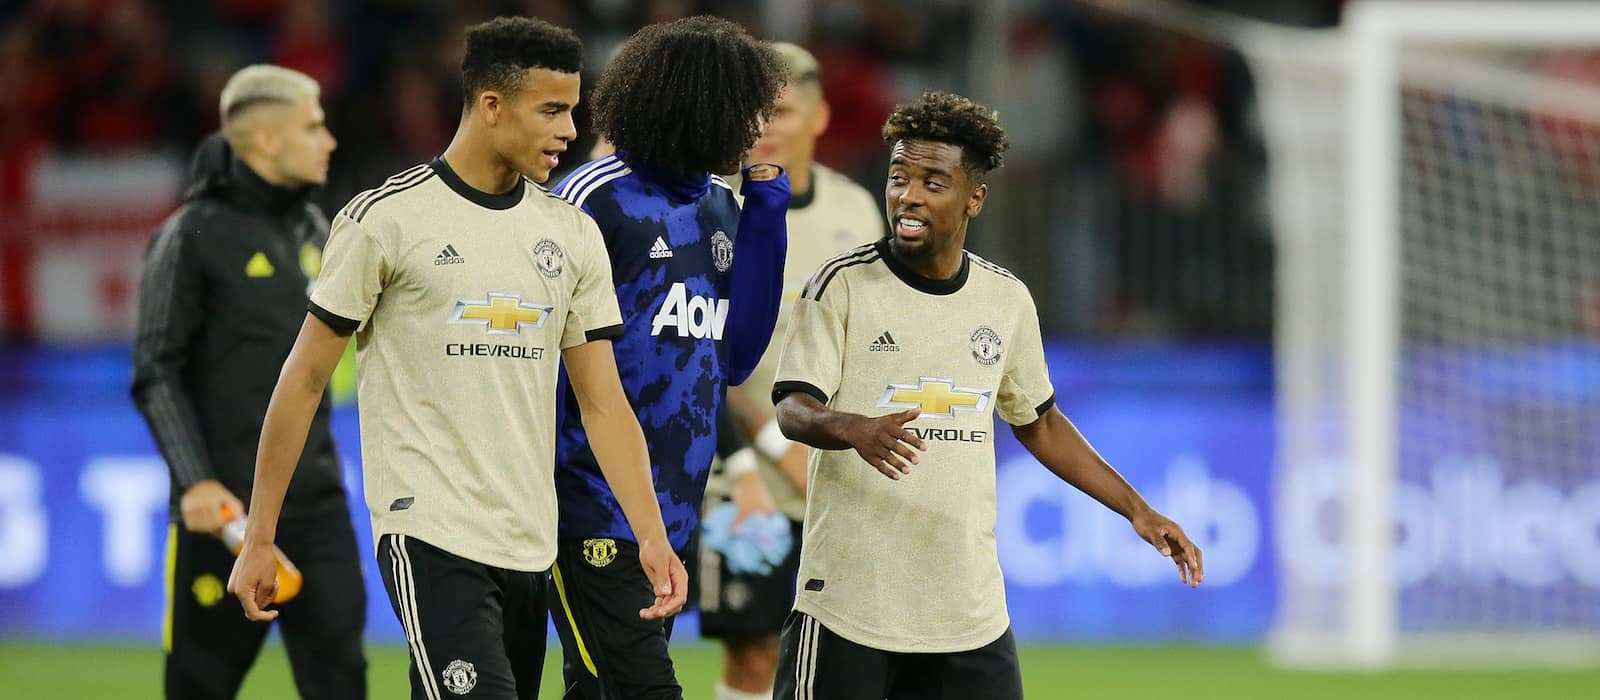 Angel Gomes reacts to scoring first senior Manchester United goal vs Tottenham Hotspur